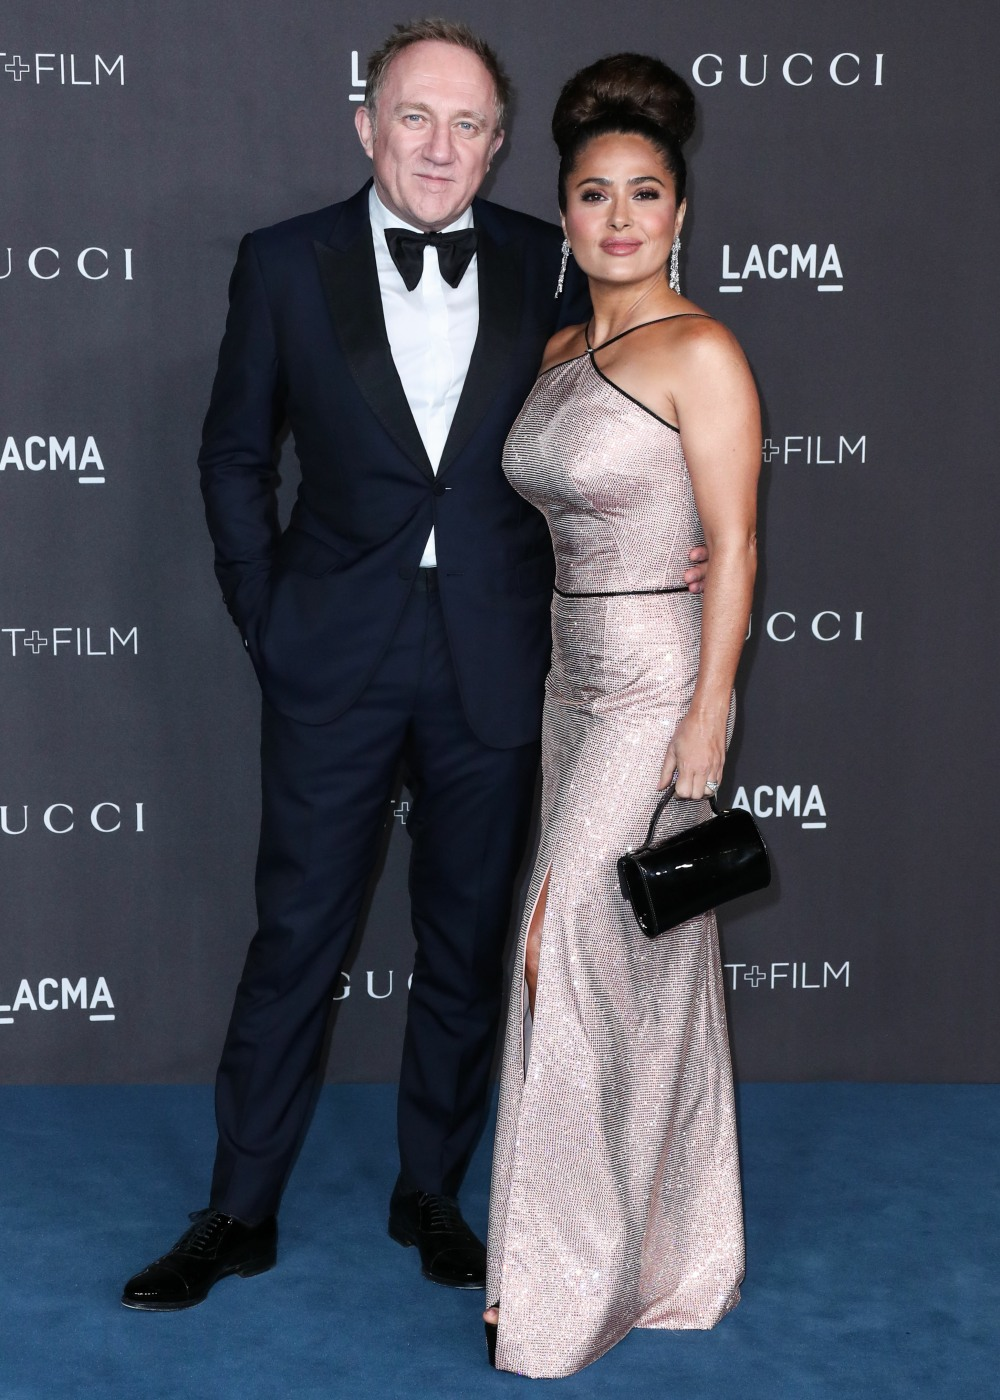 Francois-Henri Pinault and Salma Hayek Pinault arrive at the 2019 LACMA Art + Film Gala held at the Los Angeles County Museum of Art on November 2, 2019 in Los Angeles, California, United States.